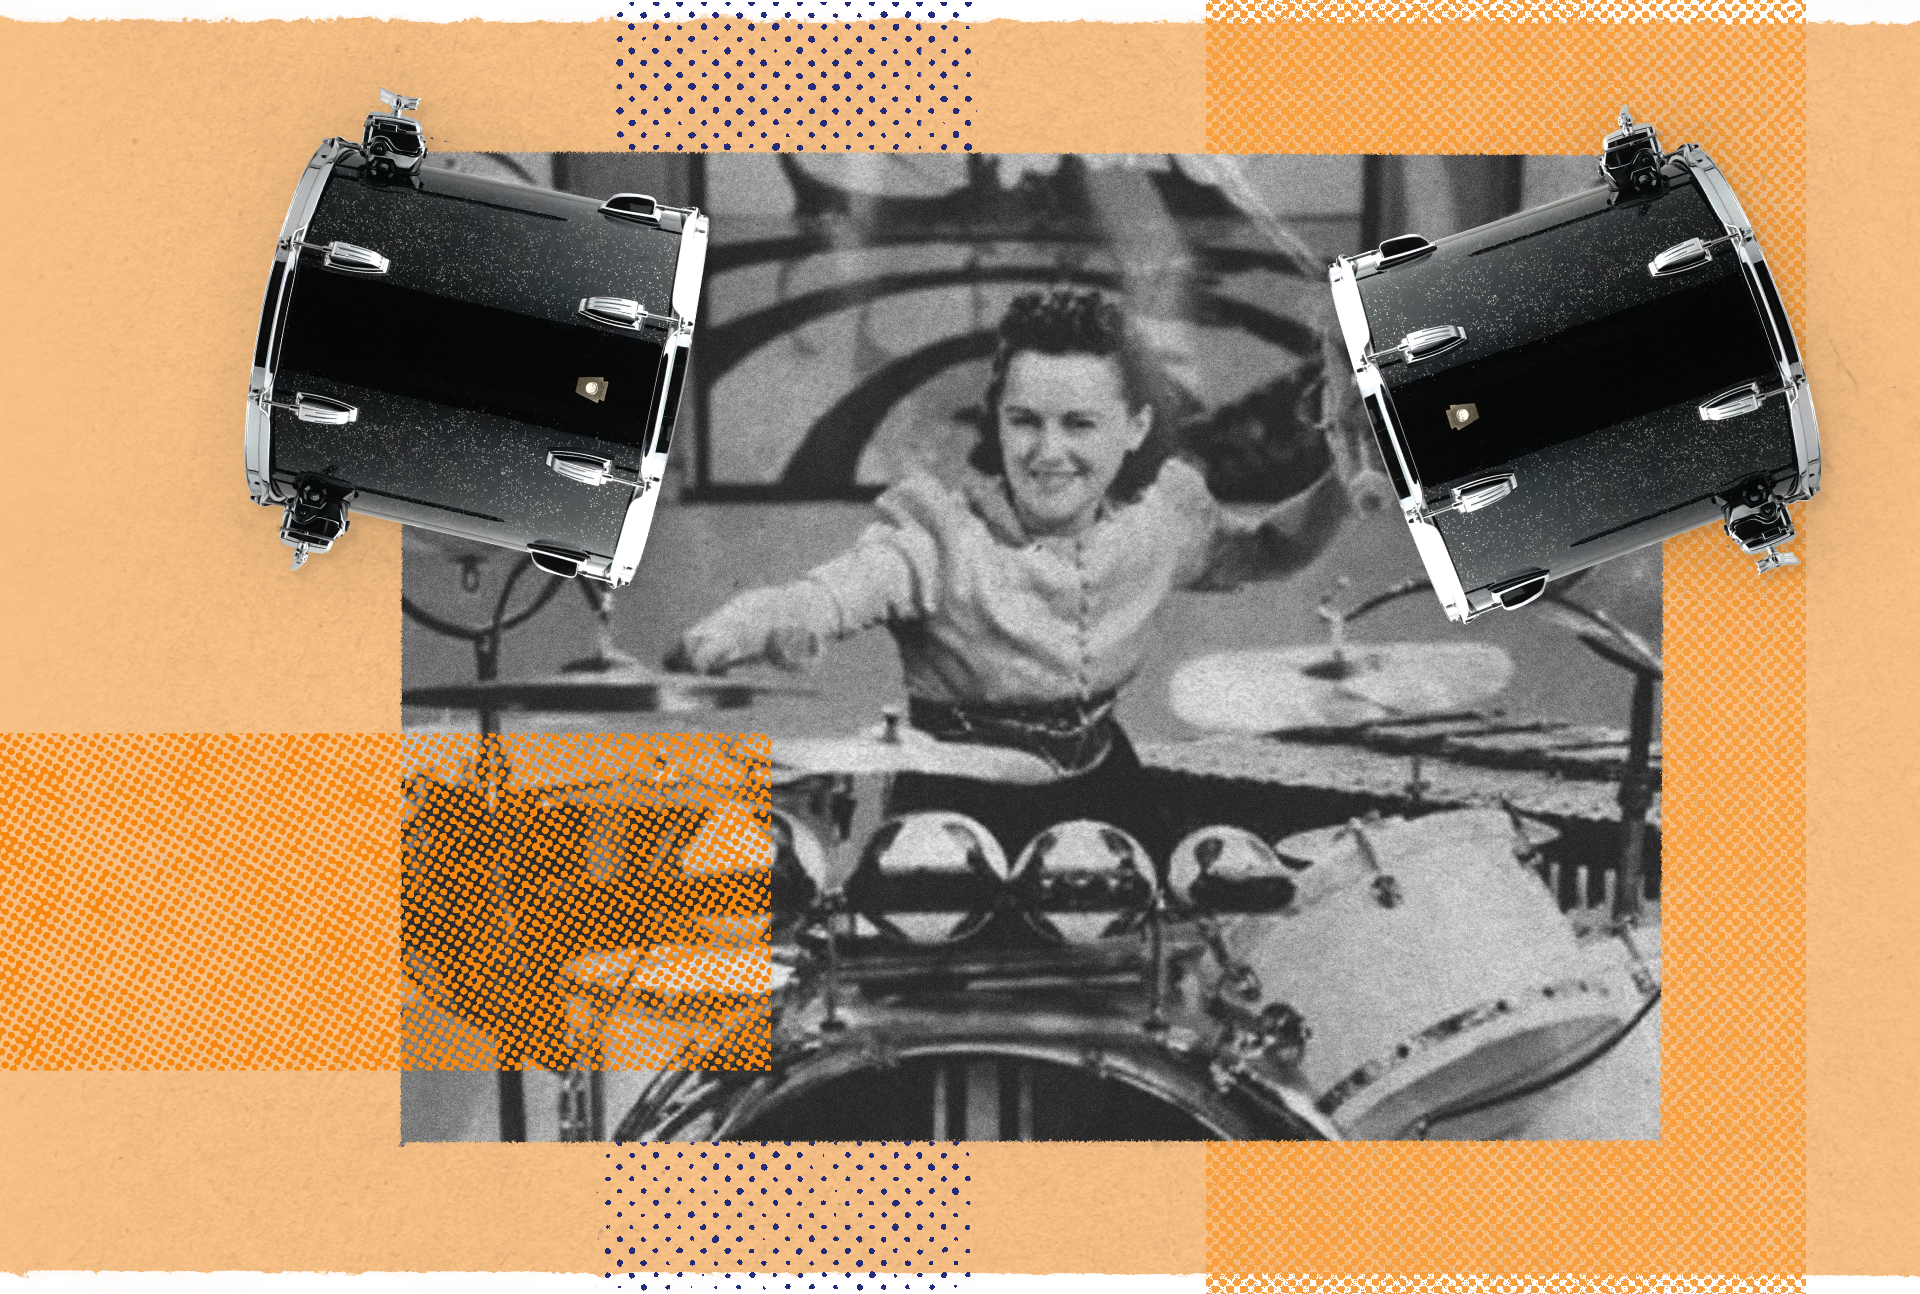 Viola Smith with the WFL/Ludwig Toms